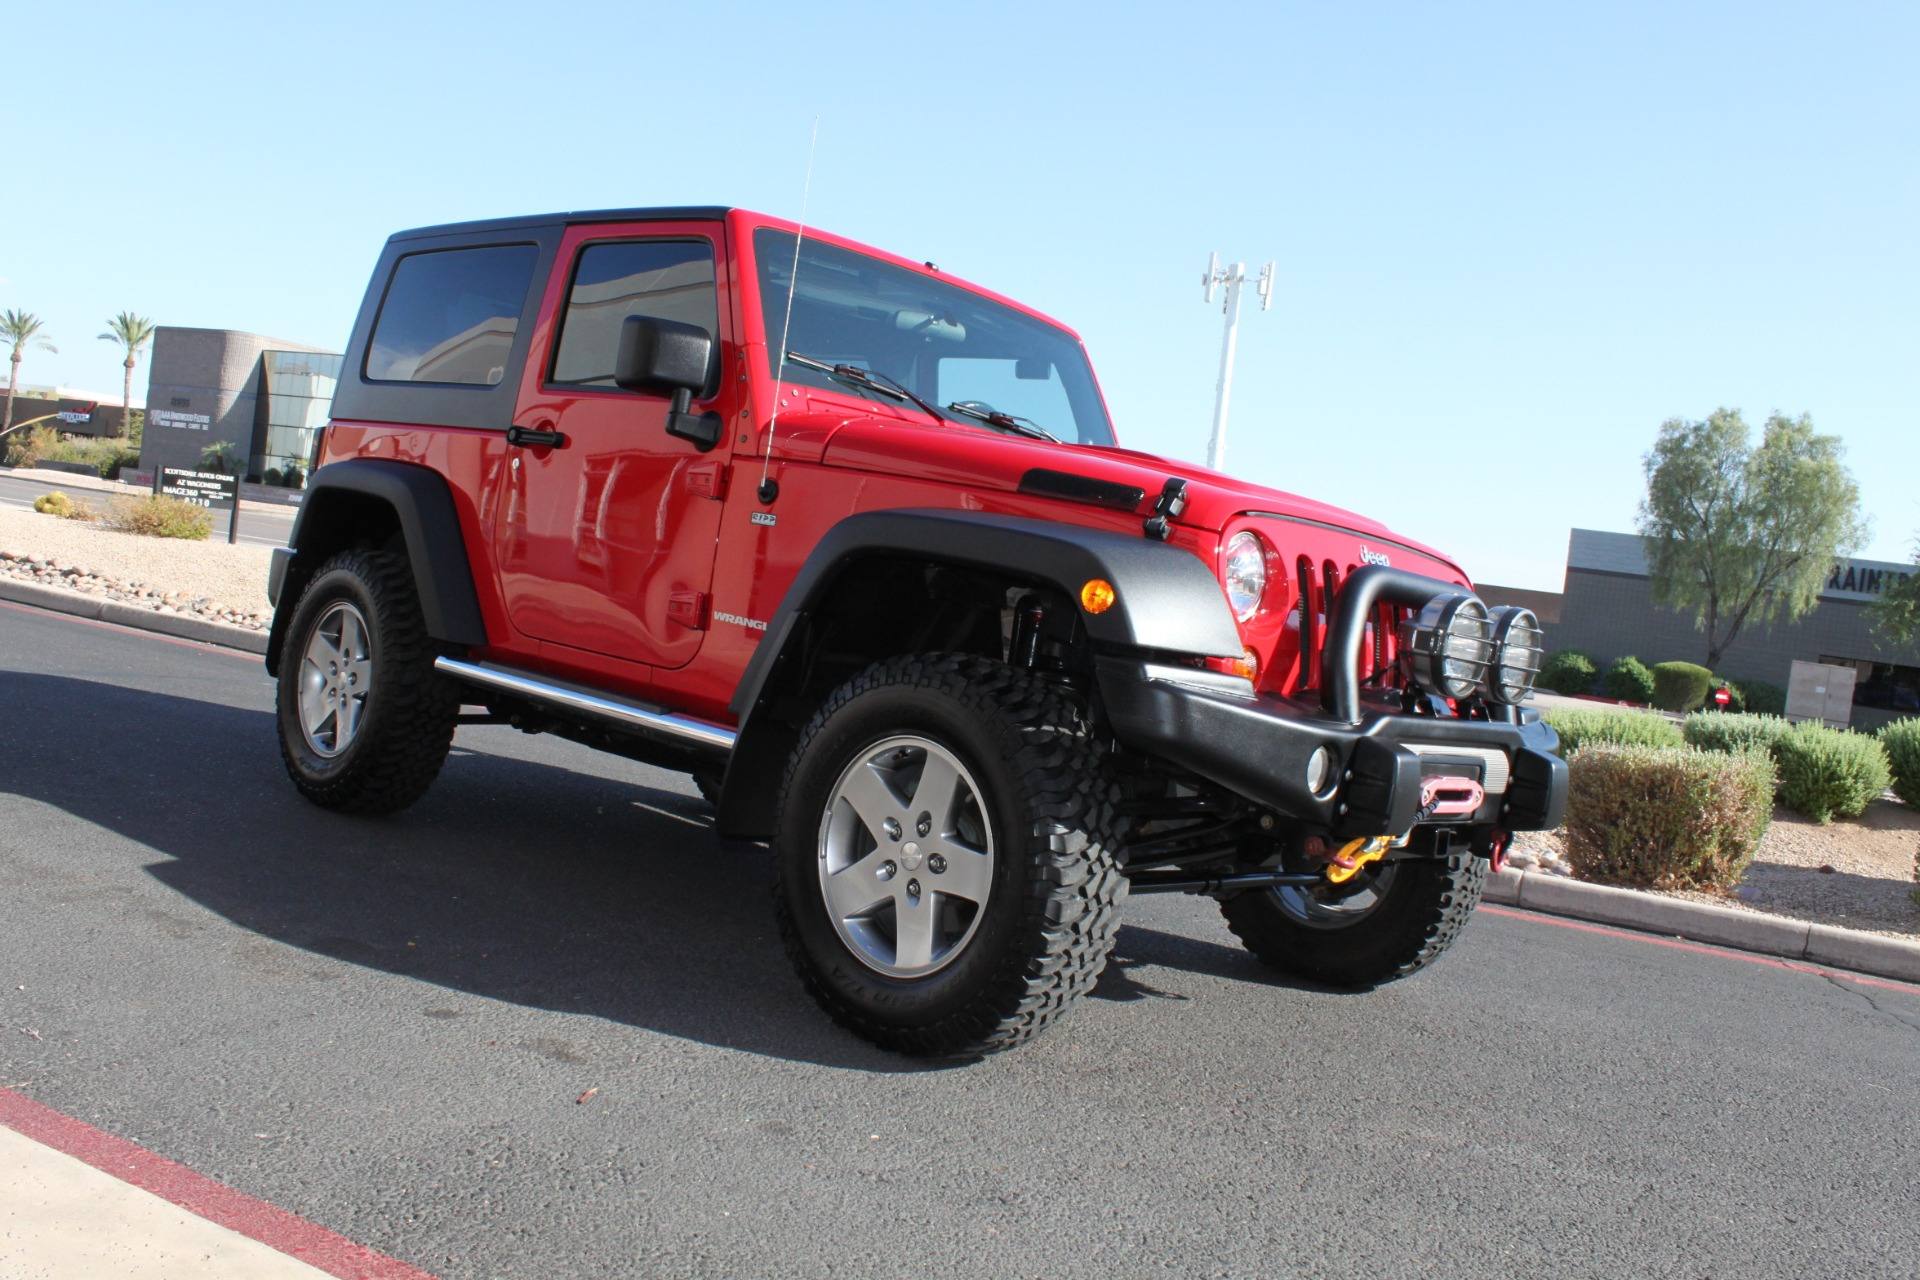 Used-2007-Jeep-Wrangler-X-Ripp-Supercharged-Chalenger